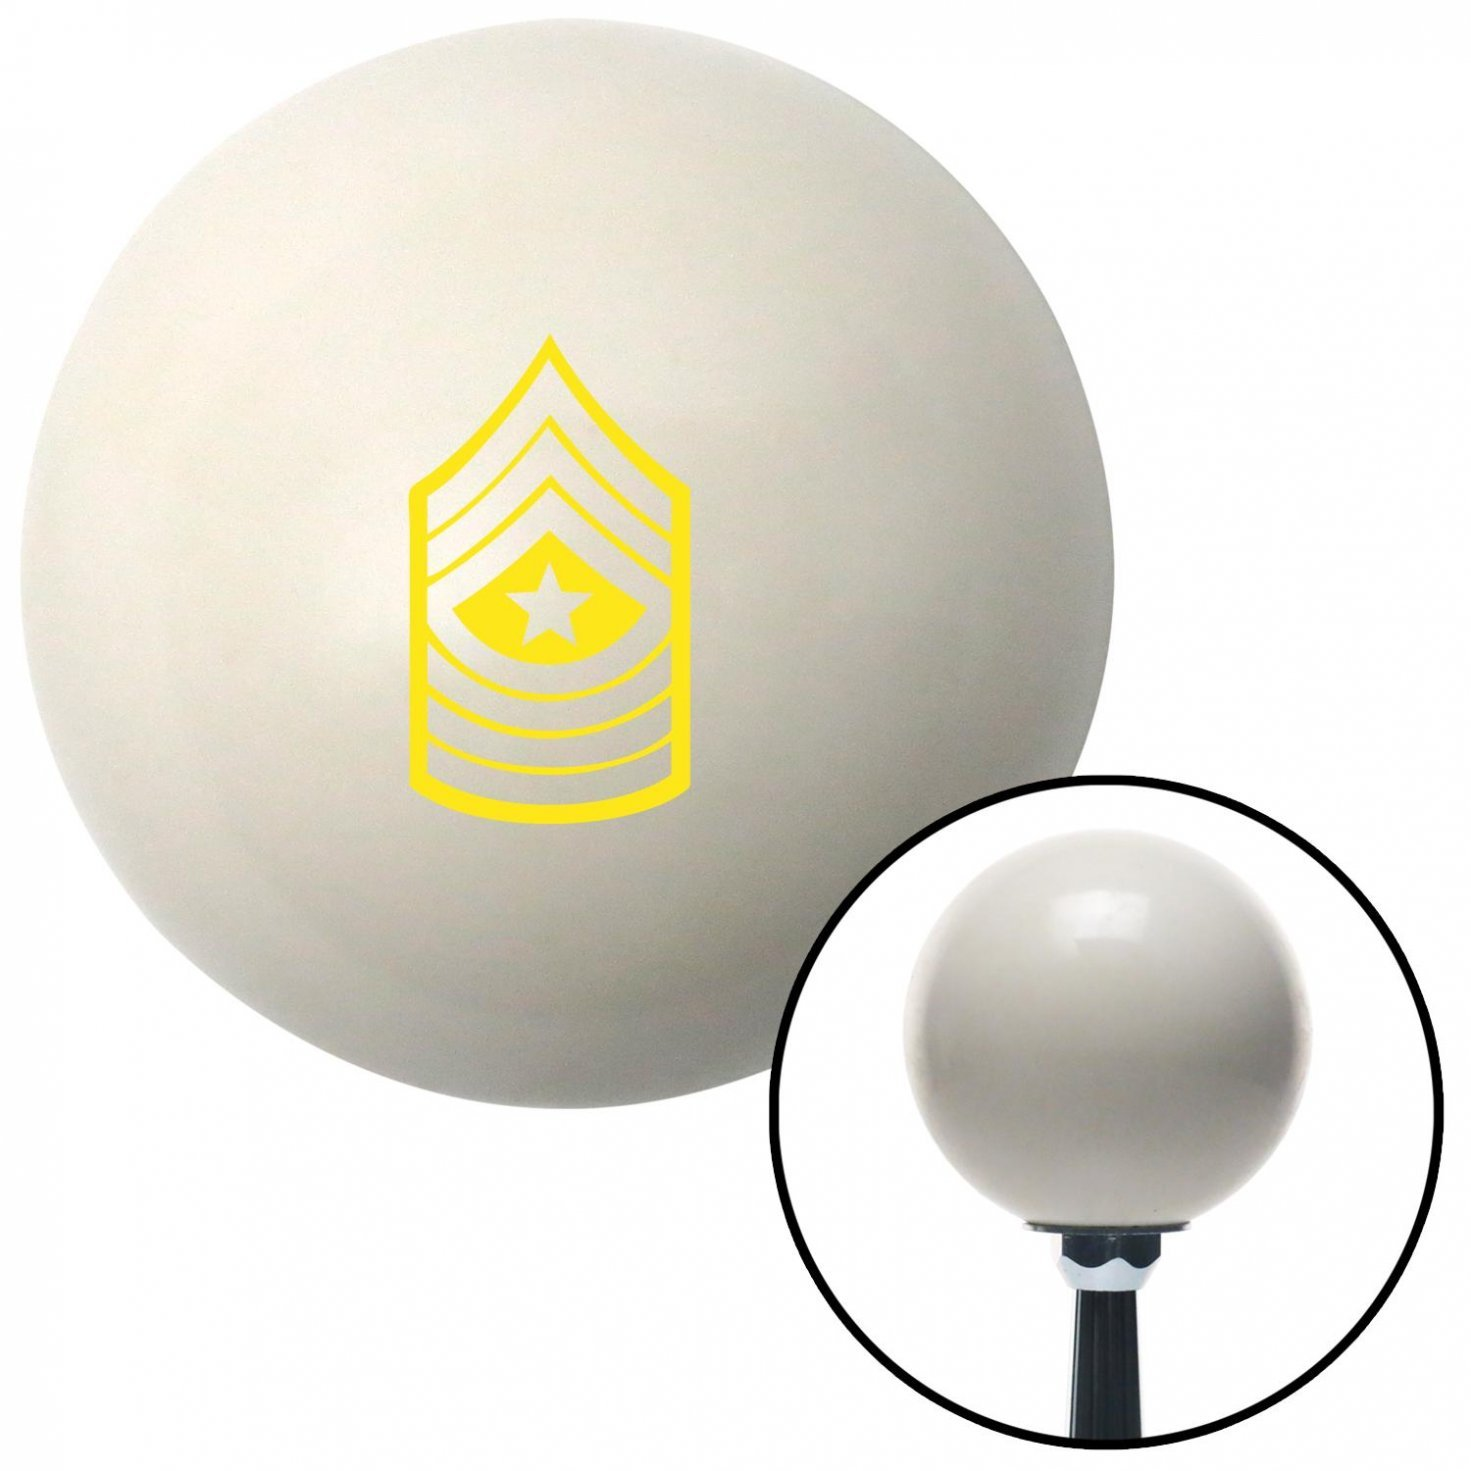 Yellow 10 Sergeant Major American Shifter 40763 Ivory Shift Knob with 16mm x 1.5 Insert